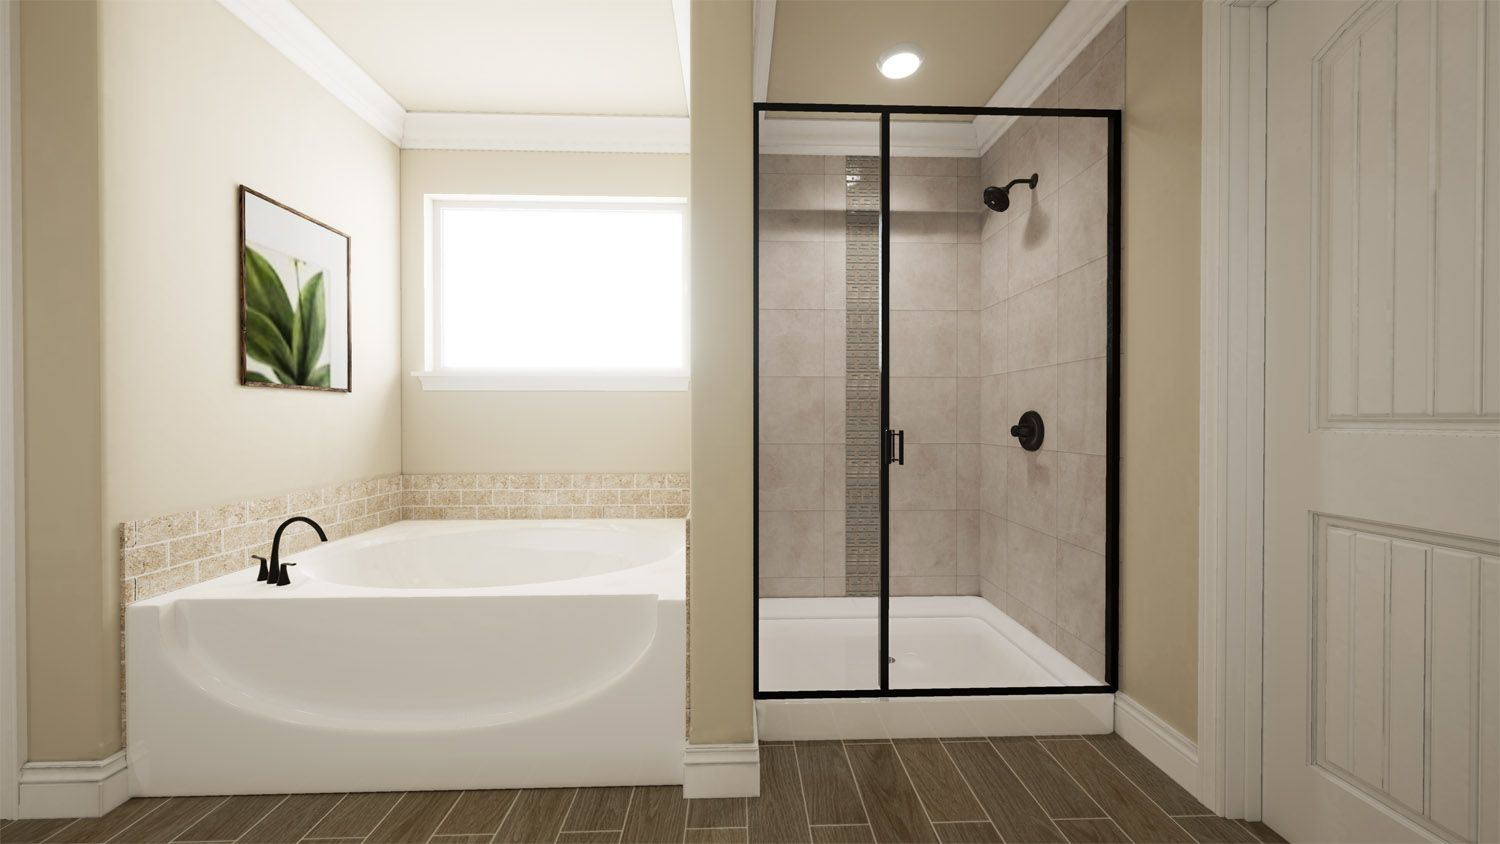 Bathroom featured in the 2600T Series By Schuber Mitchell Homes in Fayetteville, AR